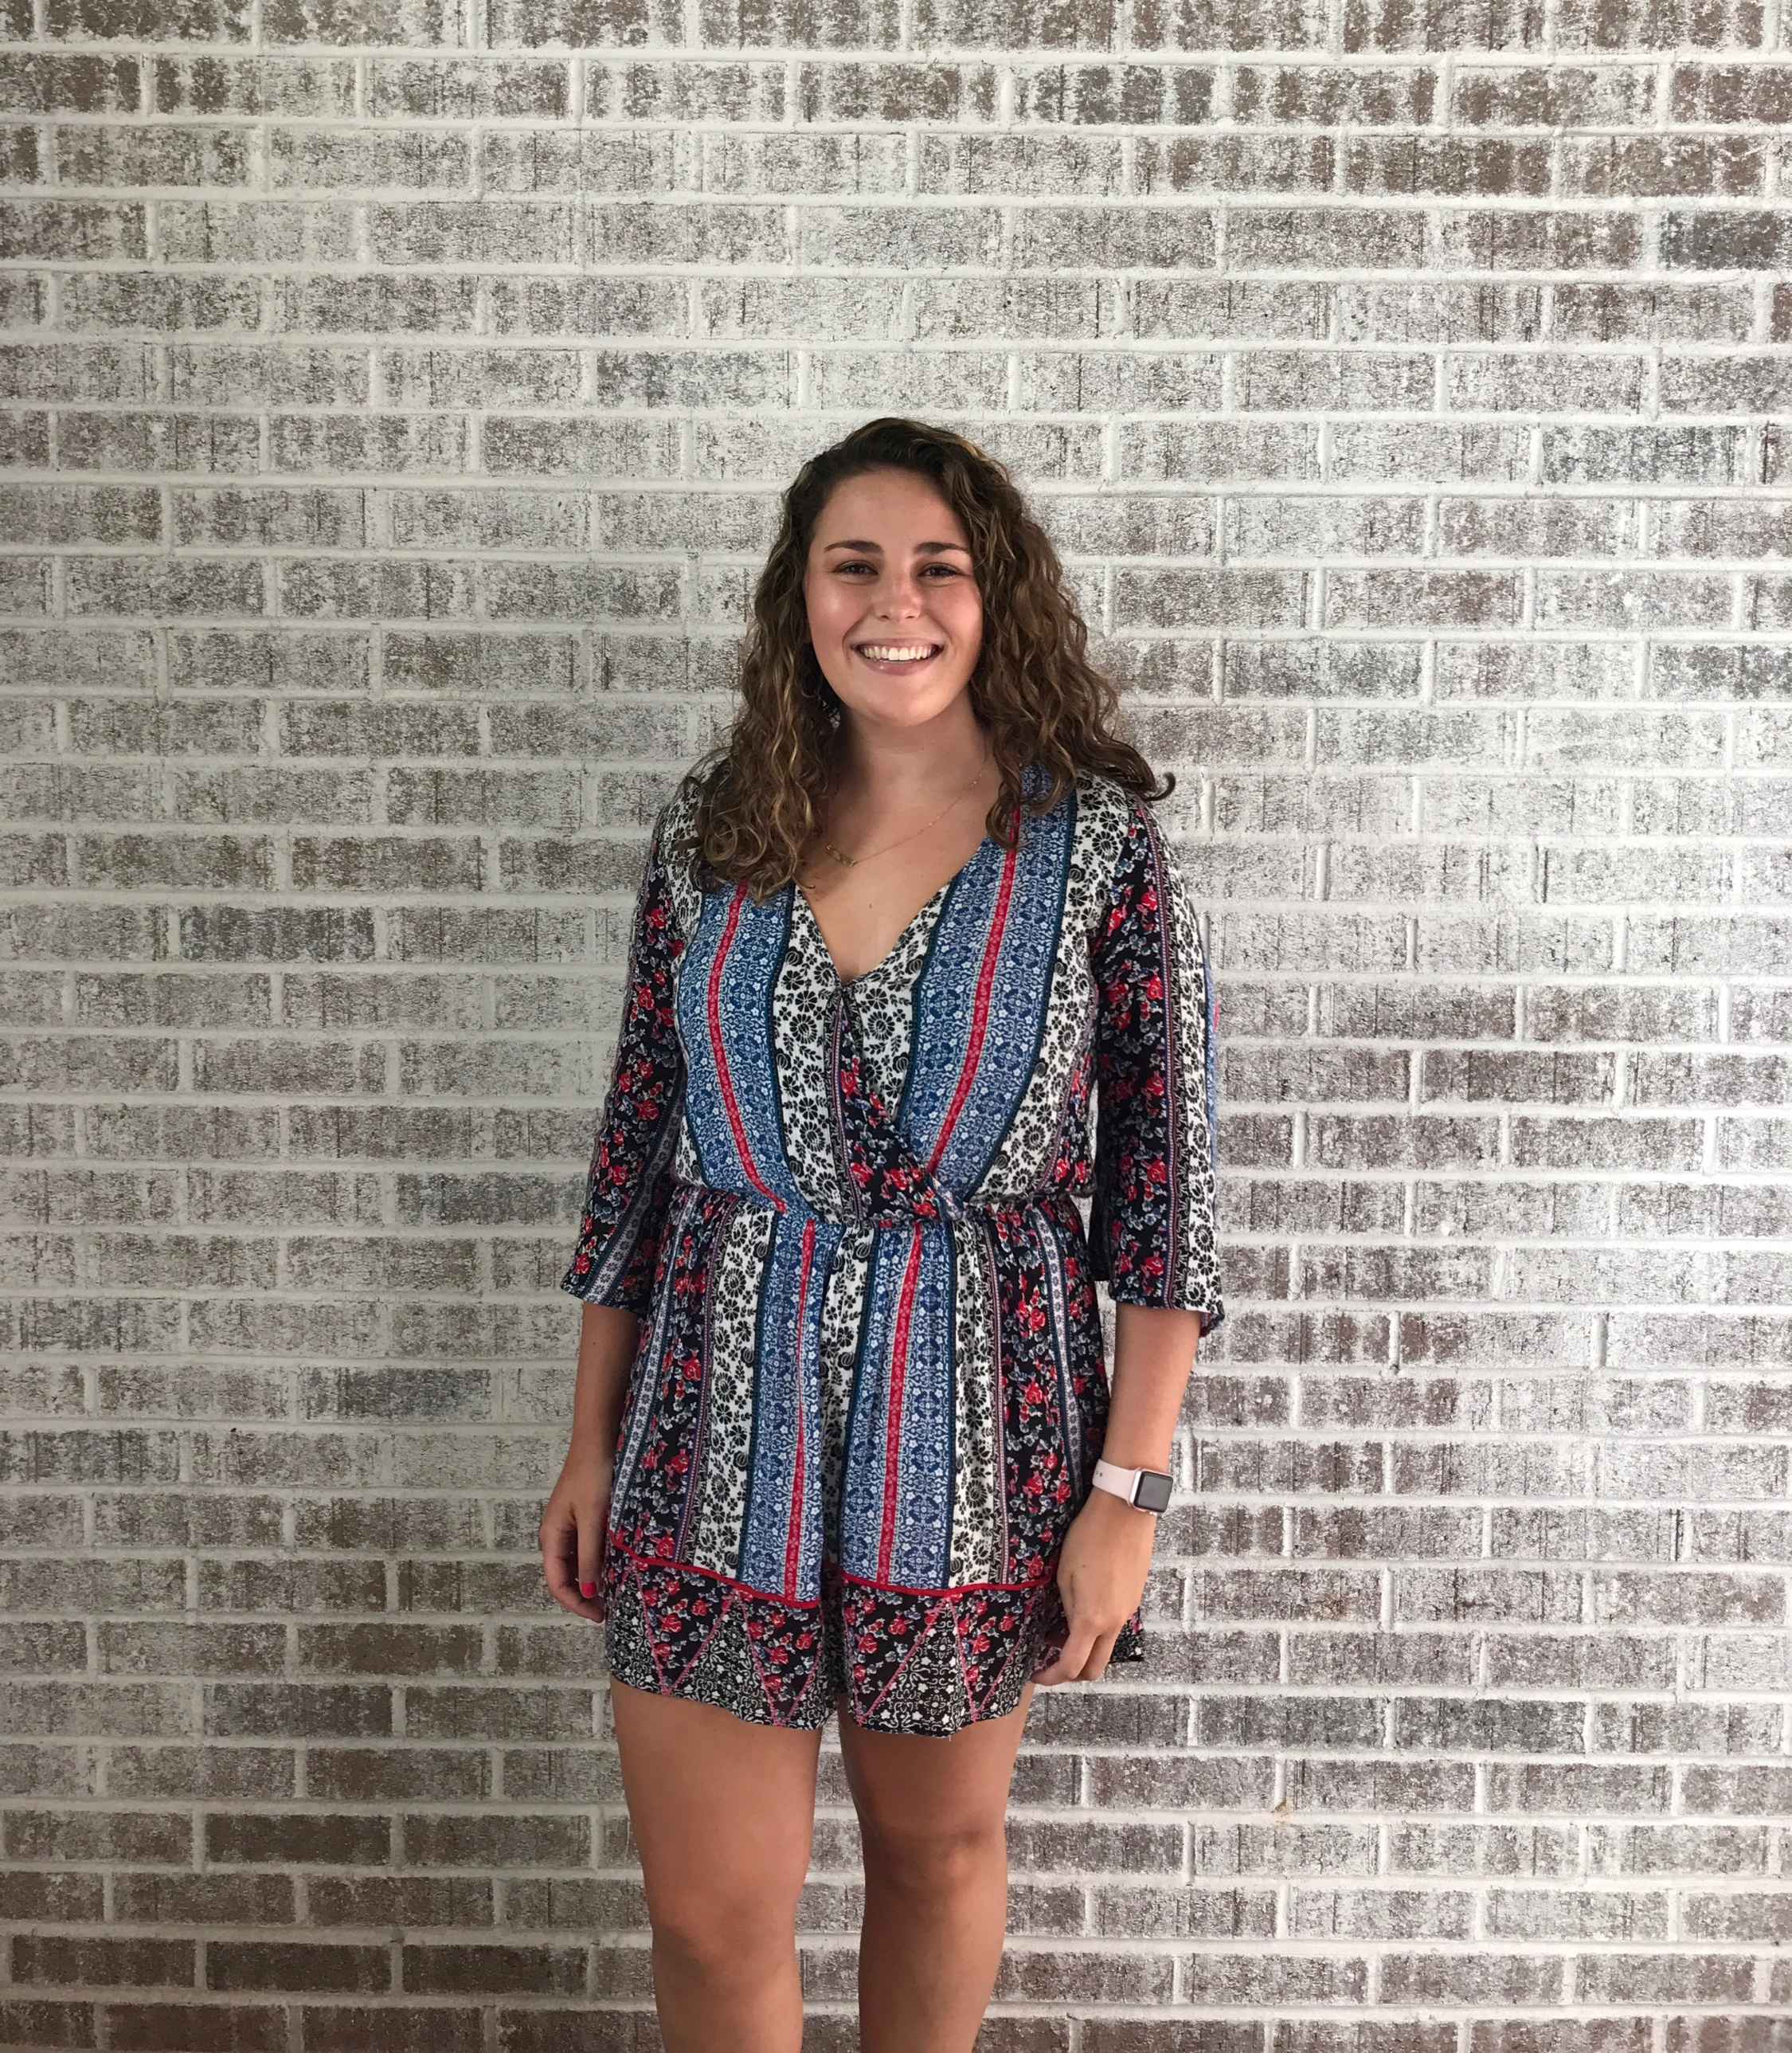 Hey y'all! My name is Carrie Godbold, and I am a senior at Meredith College graduating in May of 2018.I was born and raised in Wilmington, North Carolina right down the road from Wrightsville Beach! I am currently studying Business Administration with a minor in Human Resource Management. I am extremely passionate about anything involved with Meredith College, so most of my free time is spent staying active on campus! Although I have a special place in my heart for Raleigh, my favorite place in the world is being at the beach soaking up rays, and enjoying the waves!After graduation, I plan on pursuing a career in the wedding industry. I have experience interning with a wedding planning and coordination company, but I am extremely thrilled to have the opportunity to work along with the amazing staff at the Bradford to gain even more experience in this field. I am so grateful for this opportunity to help every client of the Bradford with their special day!